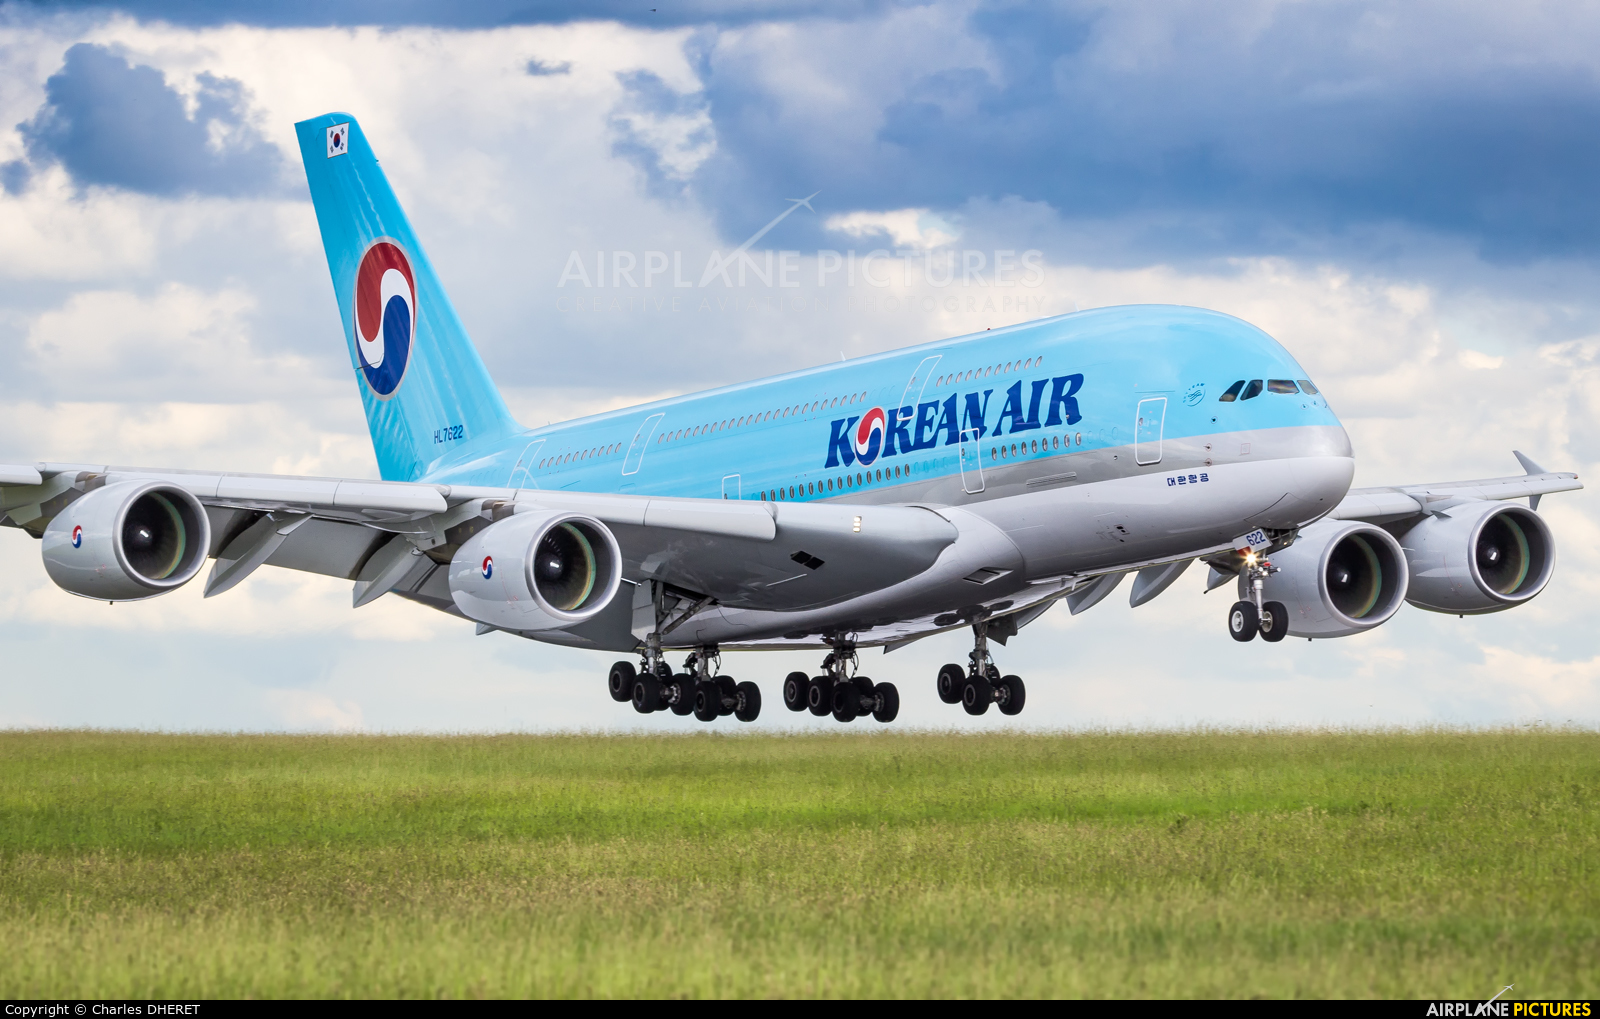 Korean Air HL7622 aircraft at Paris - Charles de Gaulle